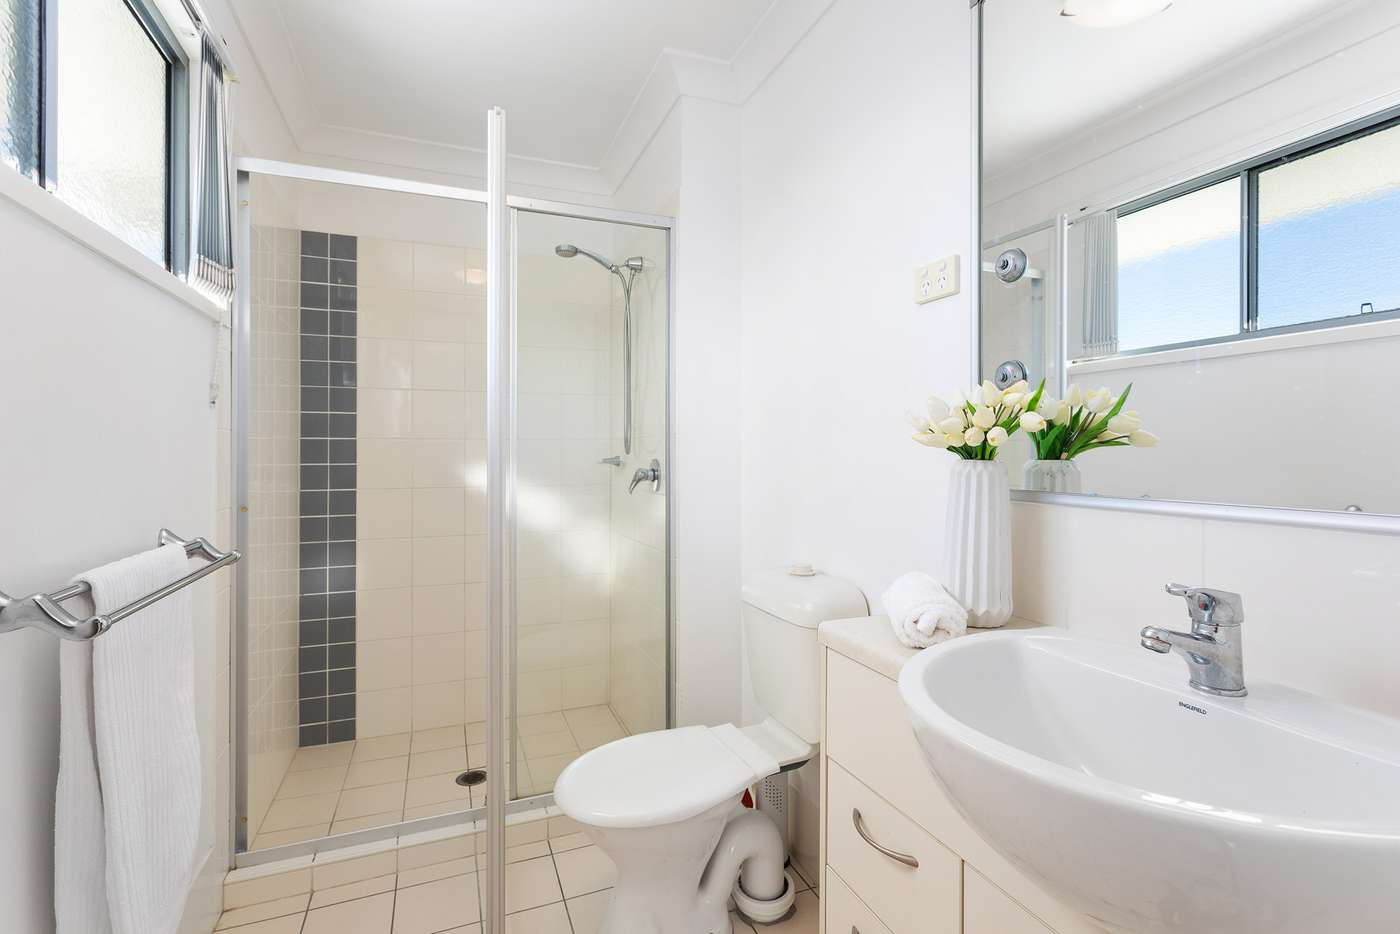 Sixth view of Homely townhouse listing, 6/110 Lexey Crescent, Wakerley QLD 4154